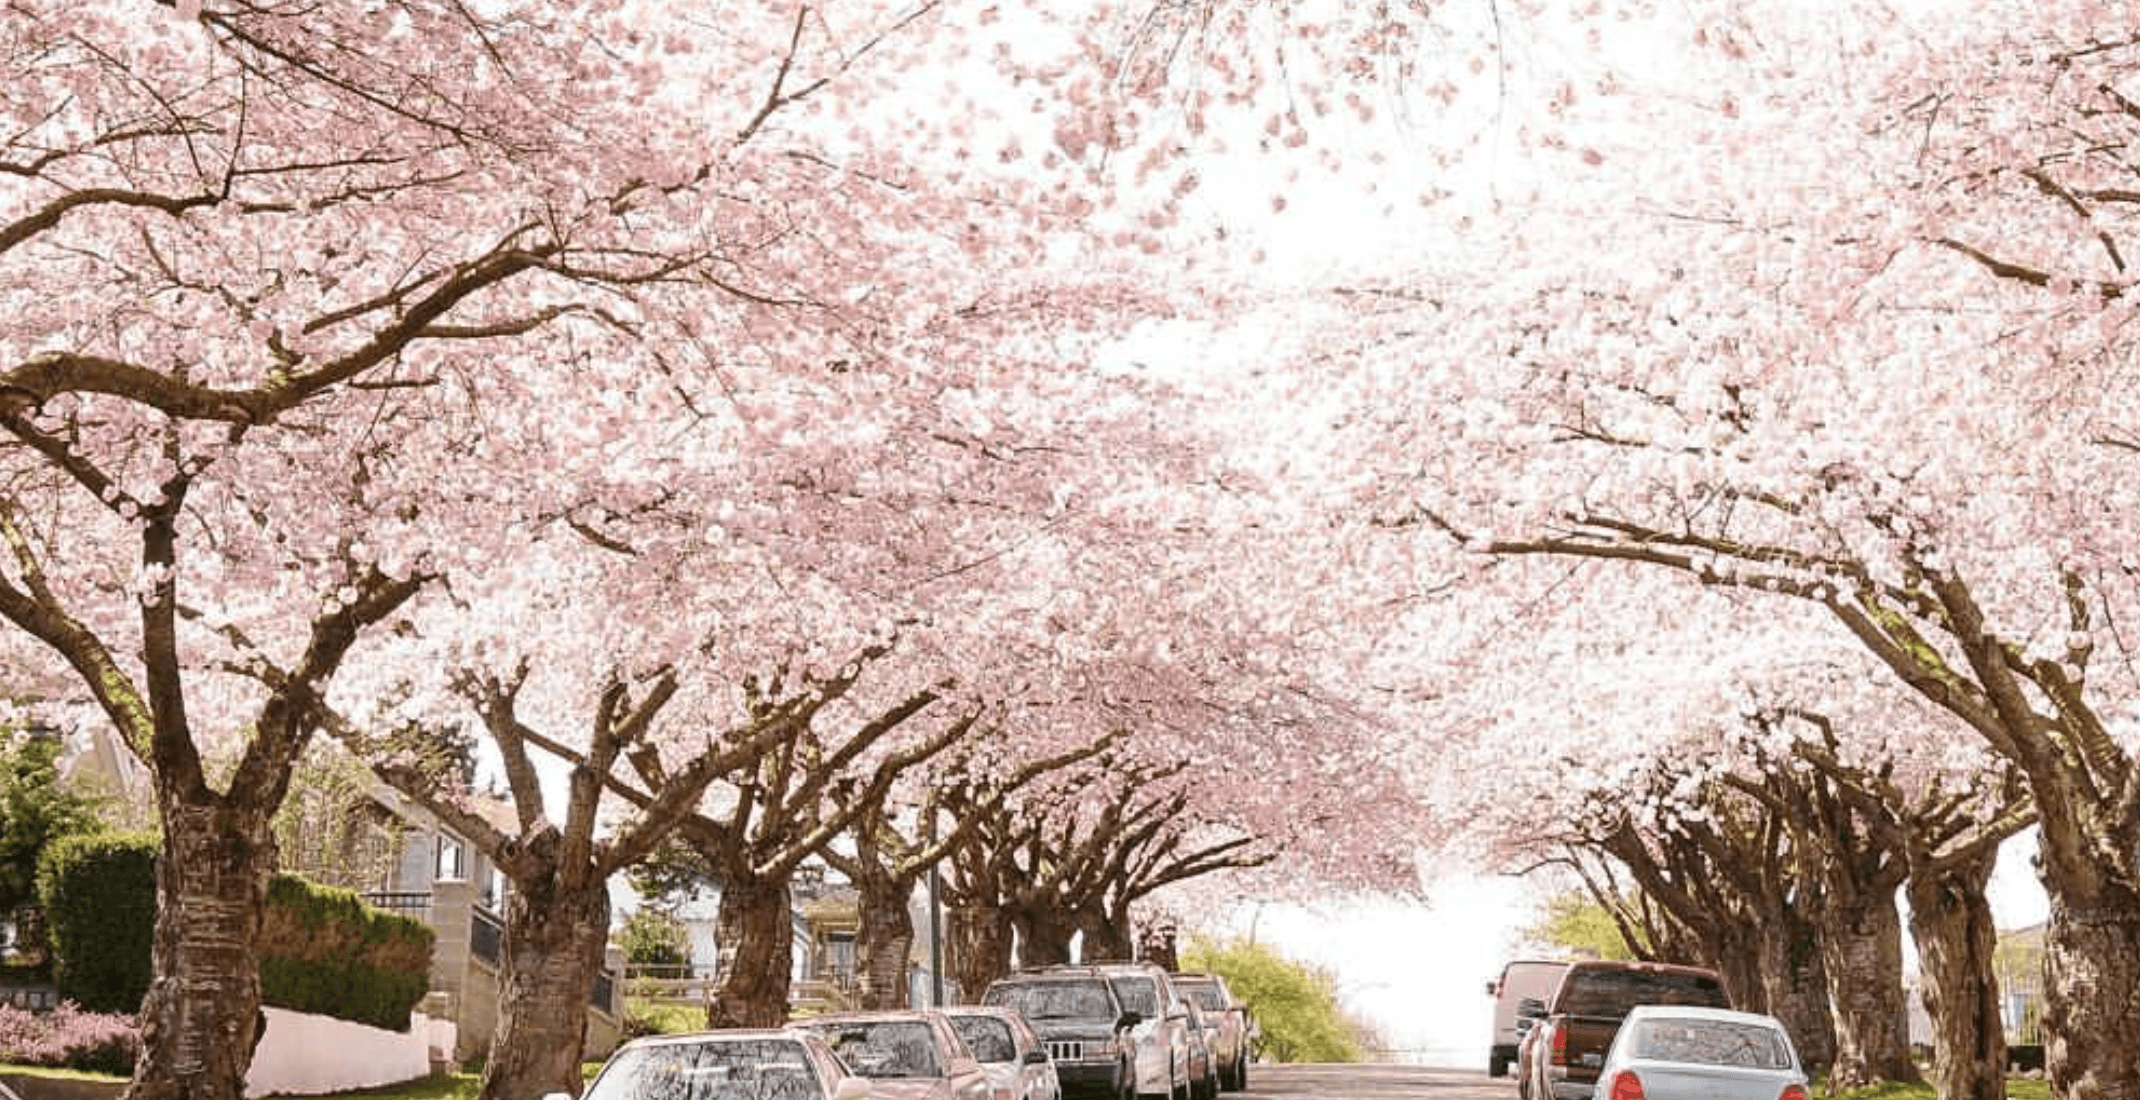 21 places to see beautiful cherry blossoms in Vancouver (PHOTOS)